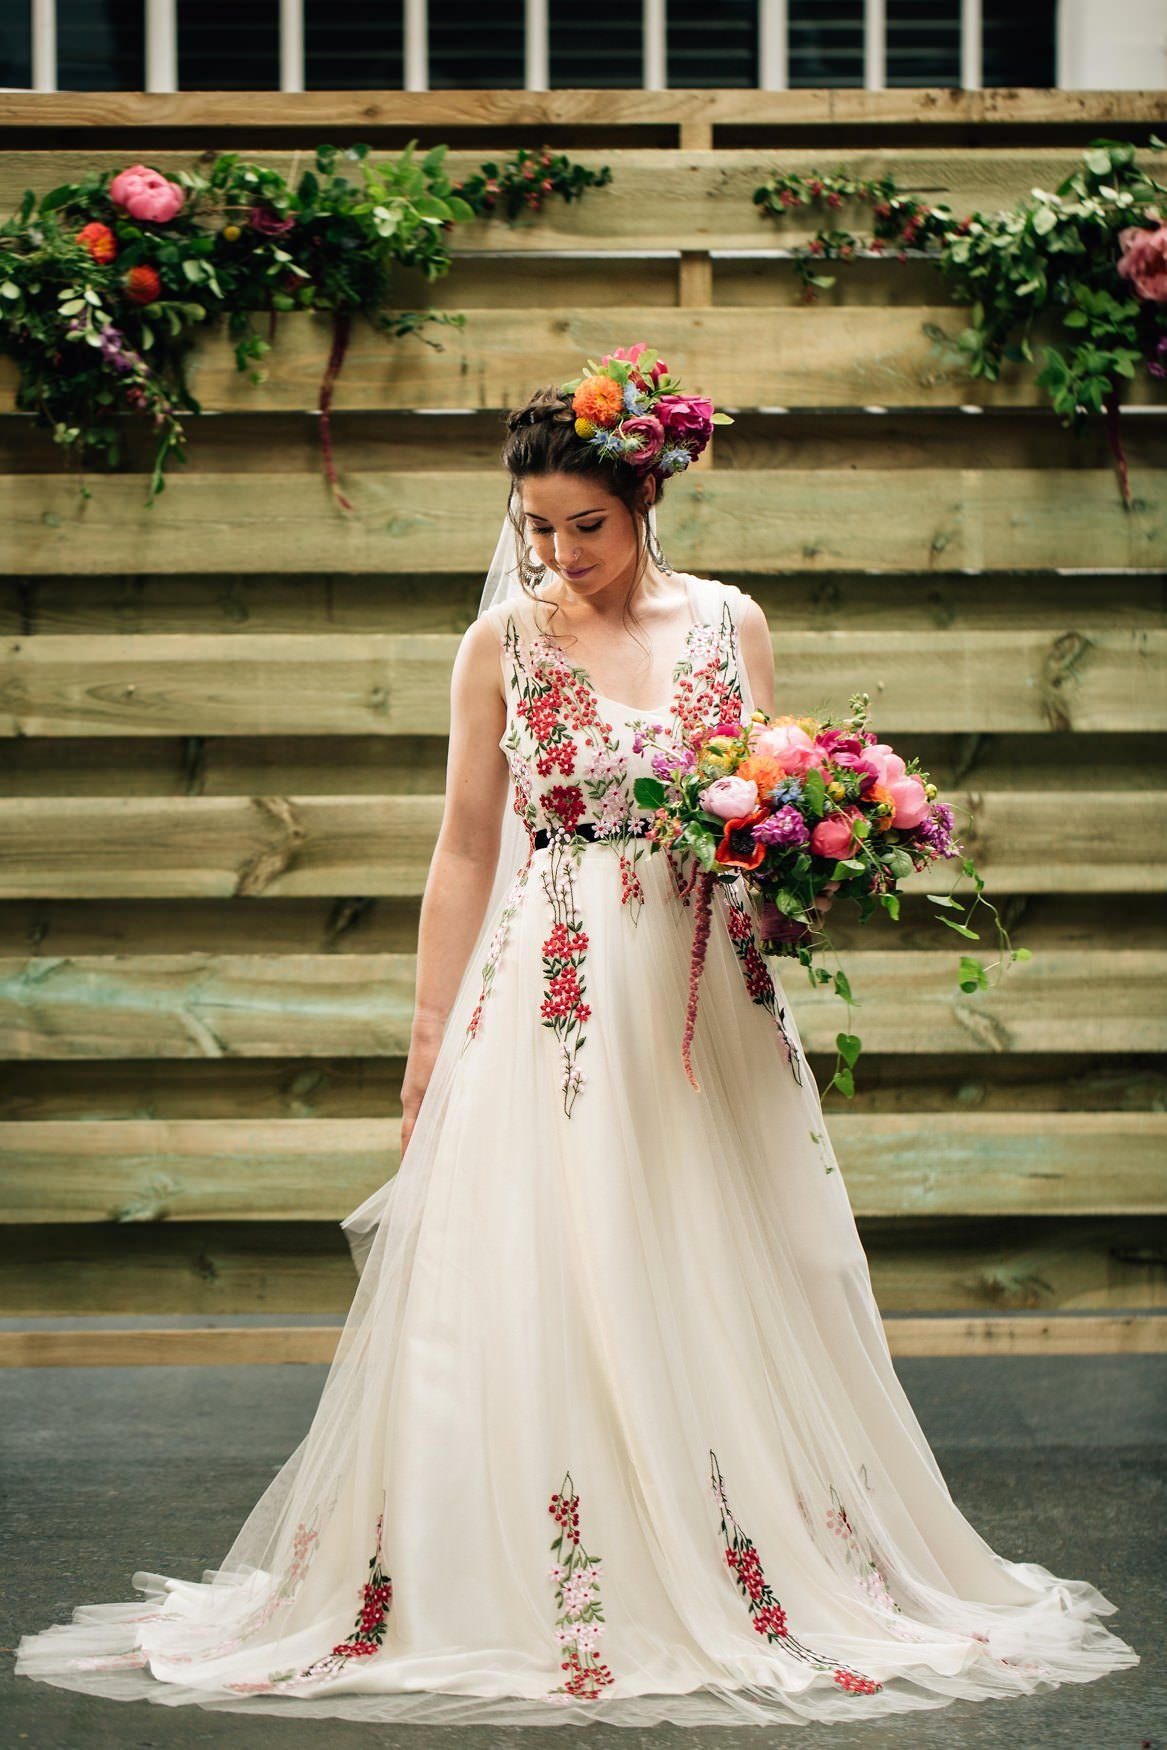 Lookbook And Planner For The Modern Bride And Groom Wedding